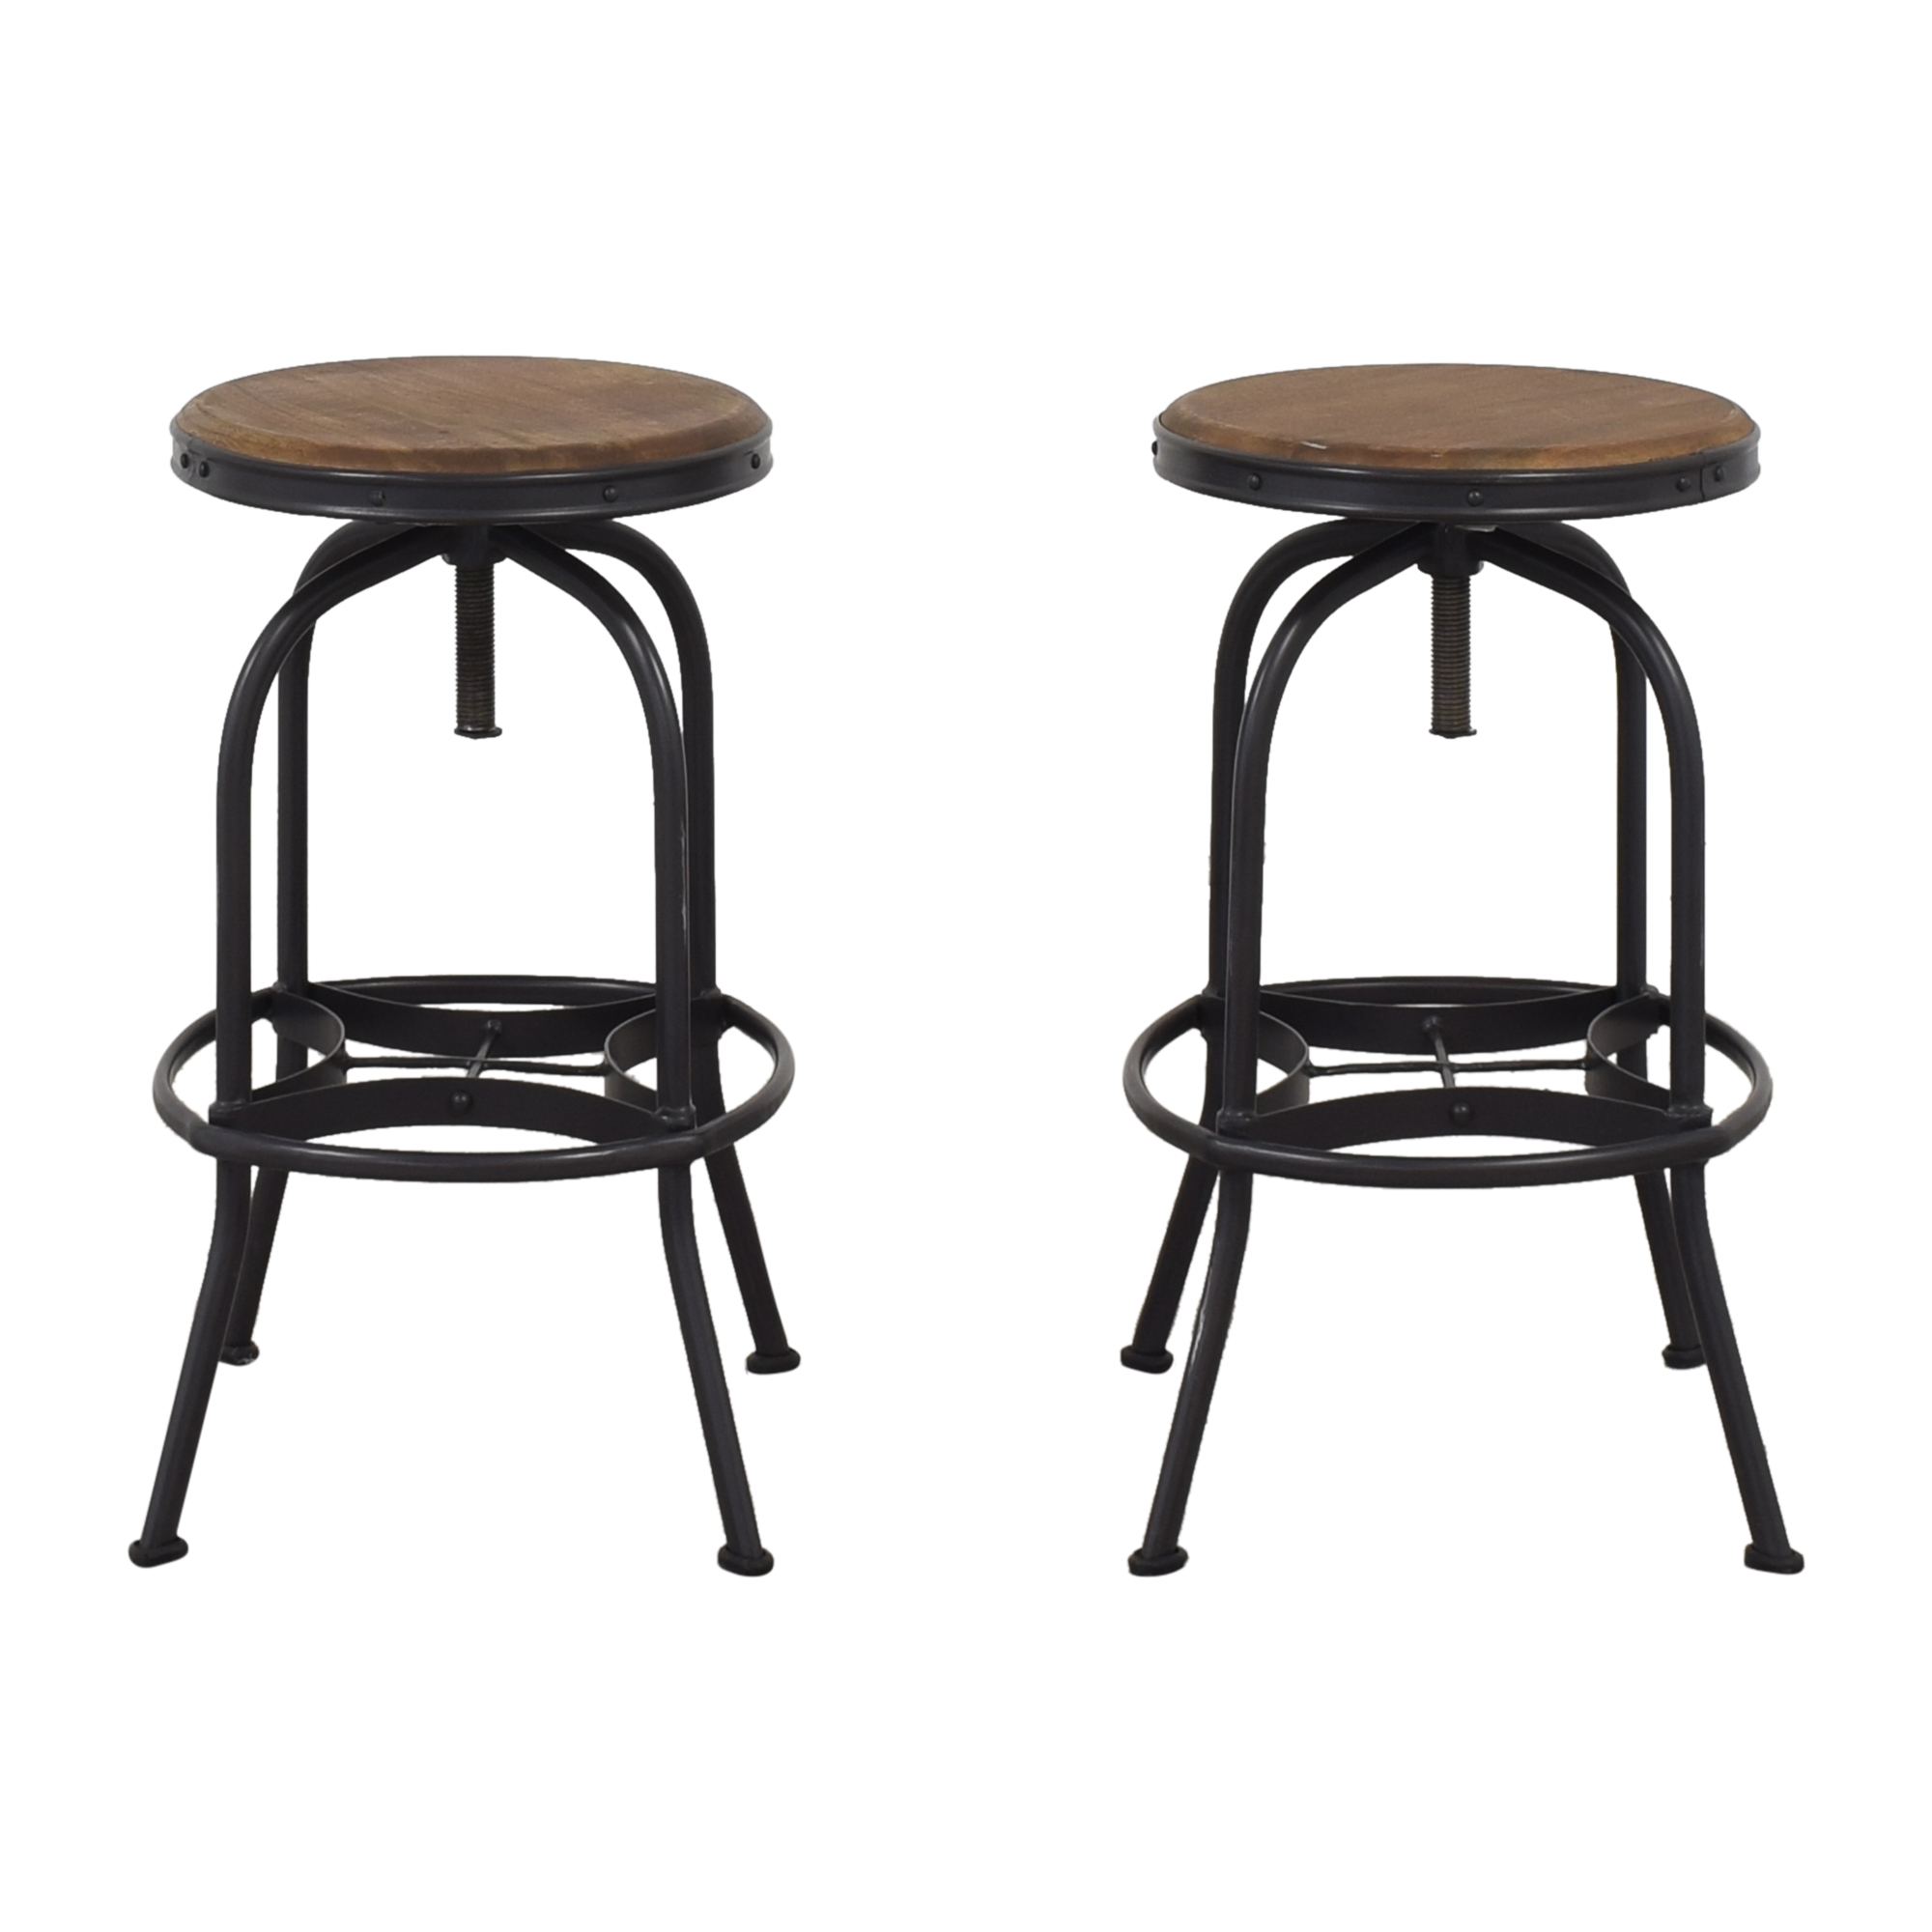 Ballard Designs Ballard Designs Allen Swivel Bar Stools nyc